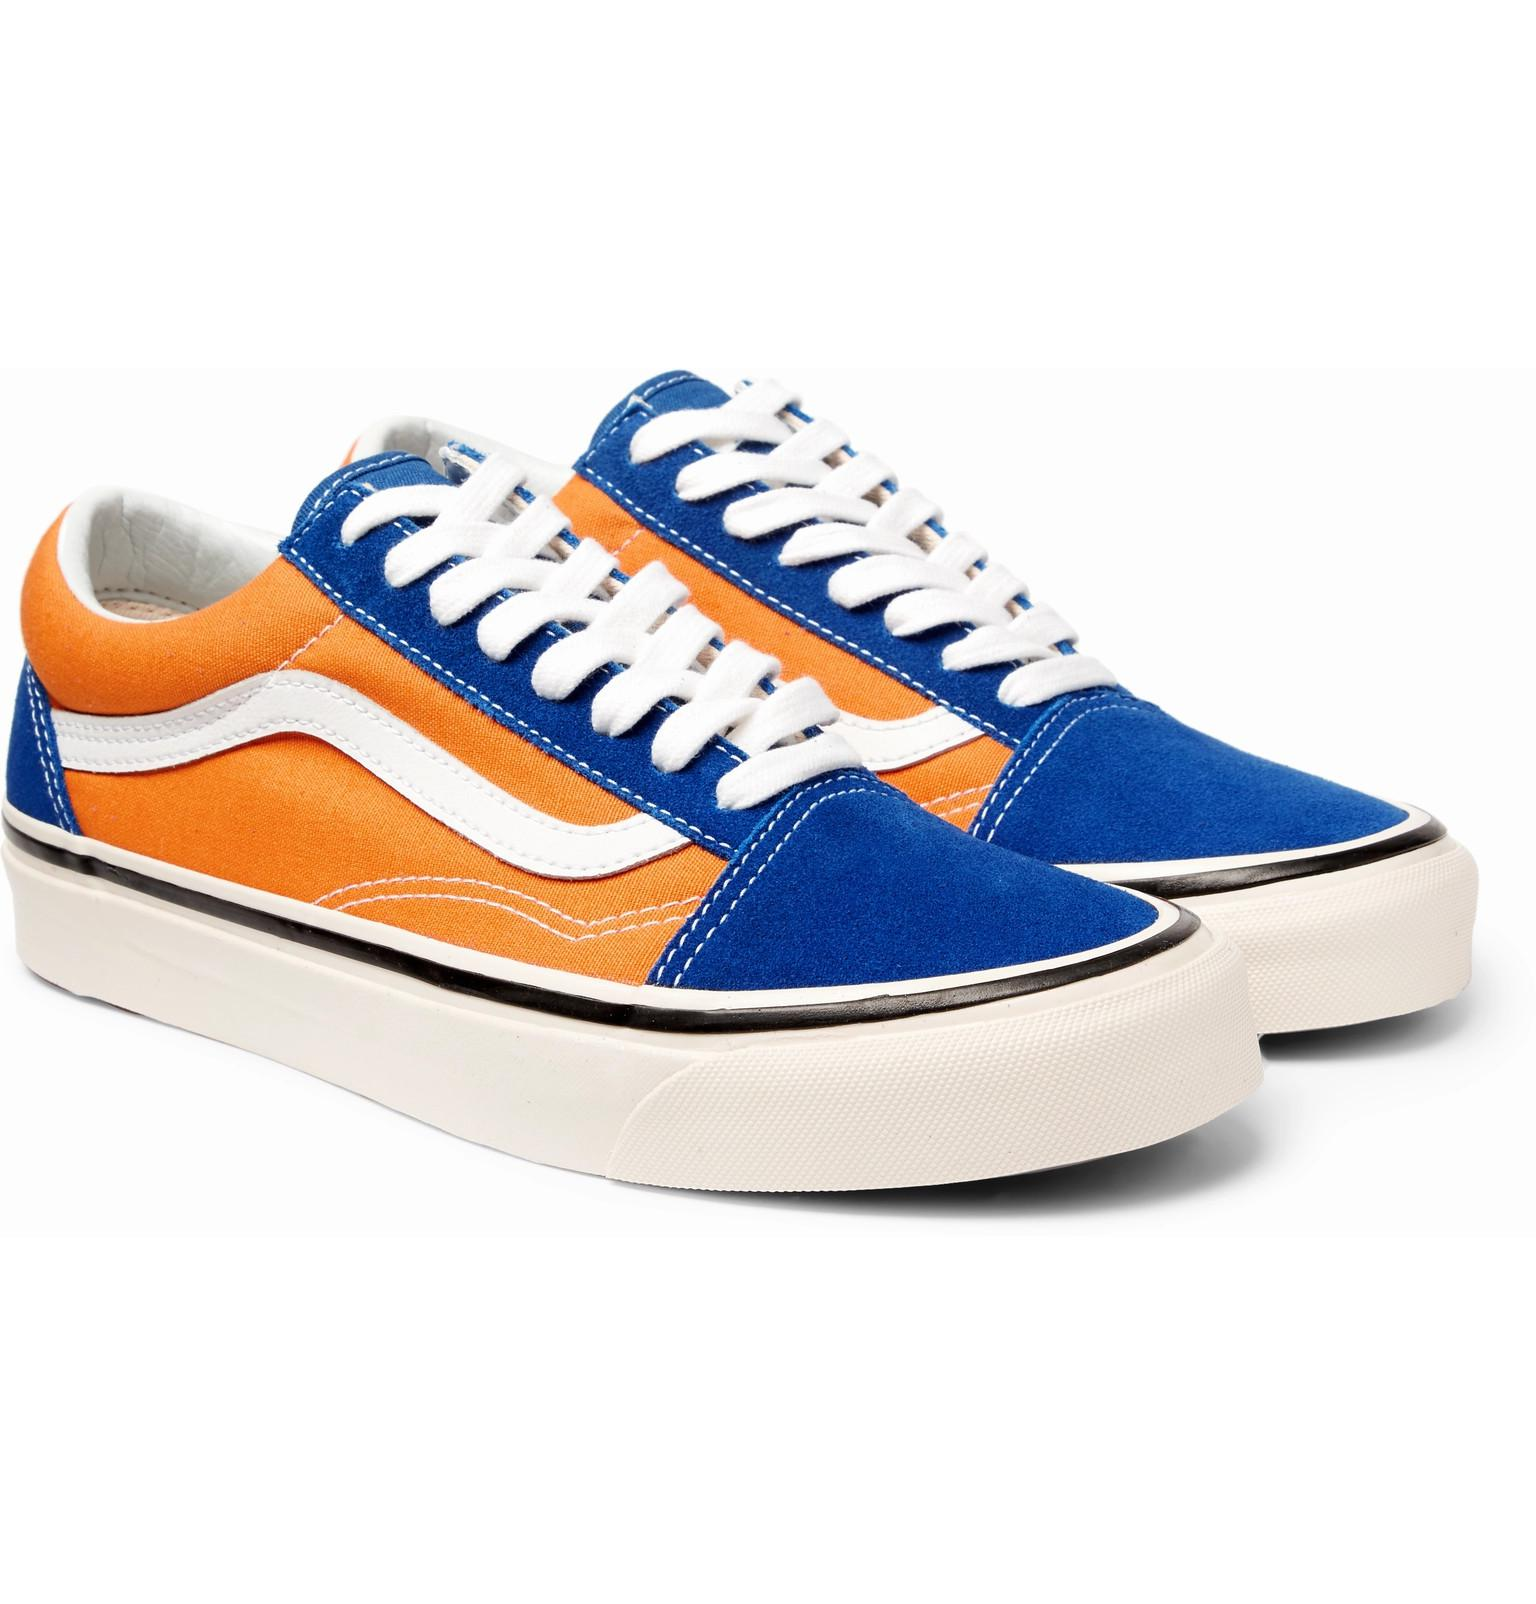 Lyst - Vans Anaheim Old Skool 36 Leather-trimmed Canvas And Suede ... 6158bc714